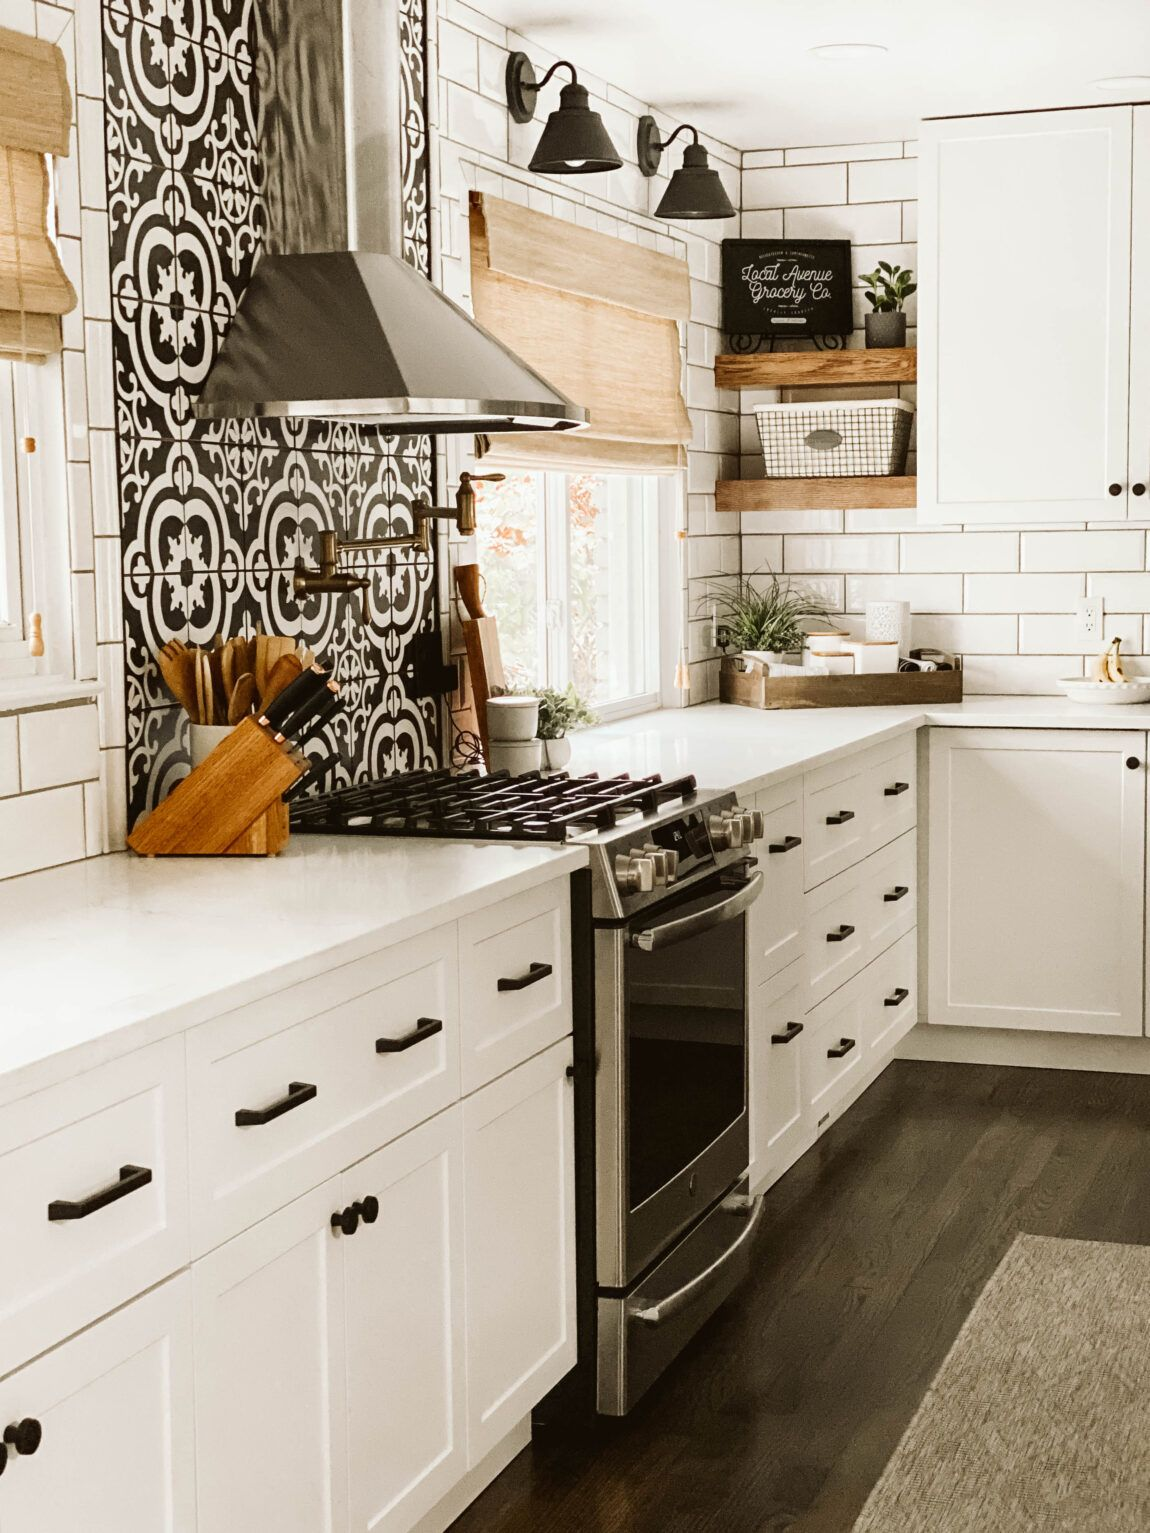 MODERN FARMHOUSE KITCHEN REVEAL // CRESTWOOD + MCKINLEY - CLARK + ALDINE